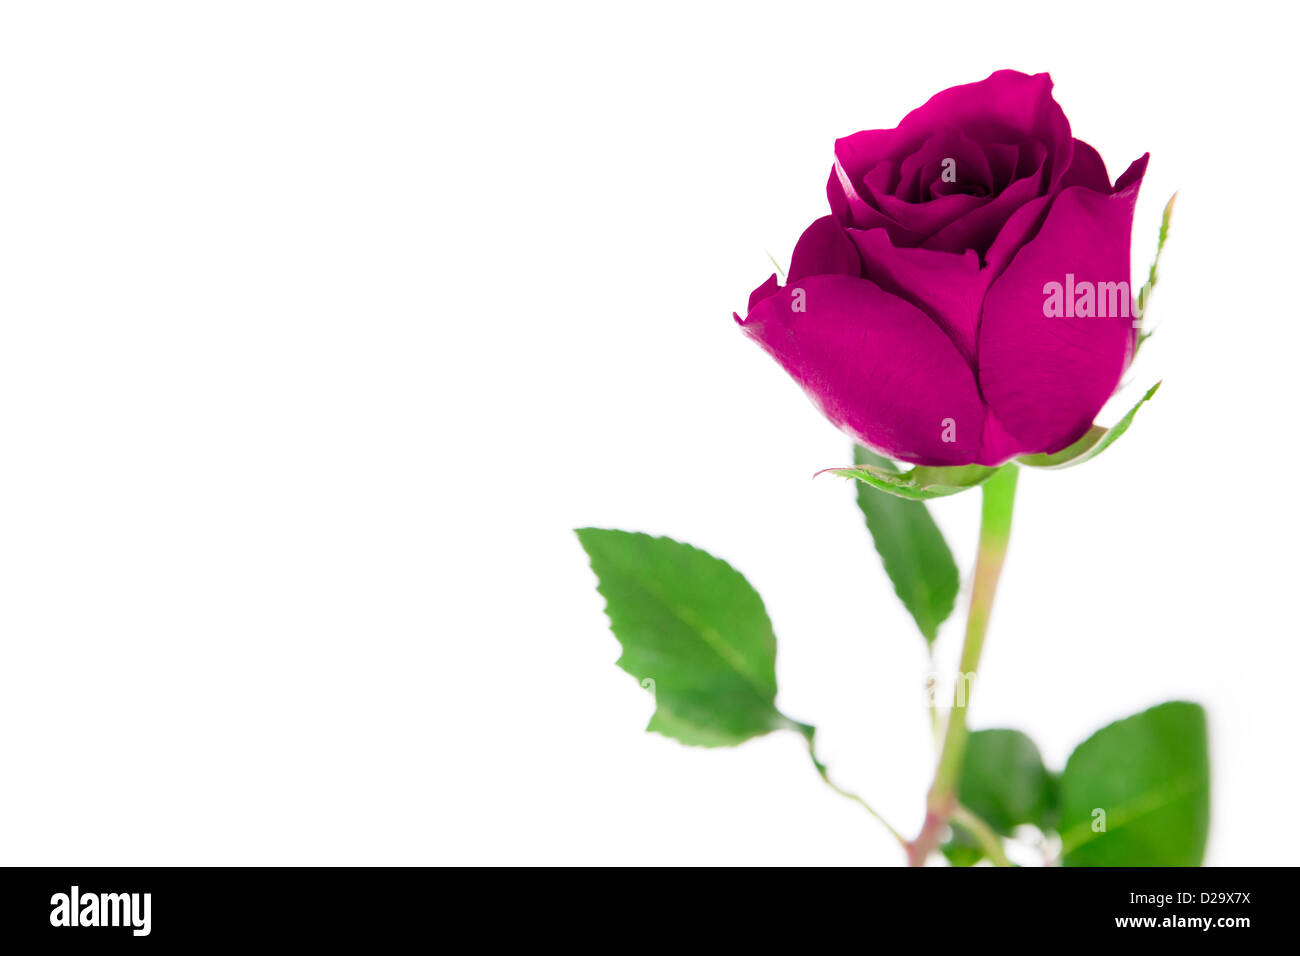 a single pink rose on a white background stock photo 53078590 alamy